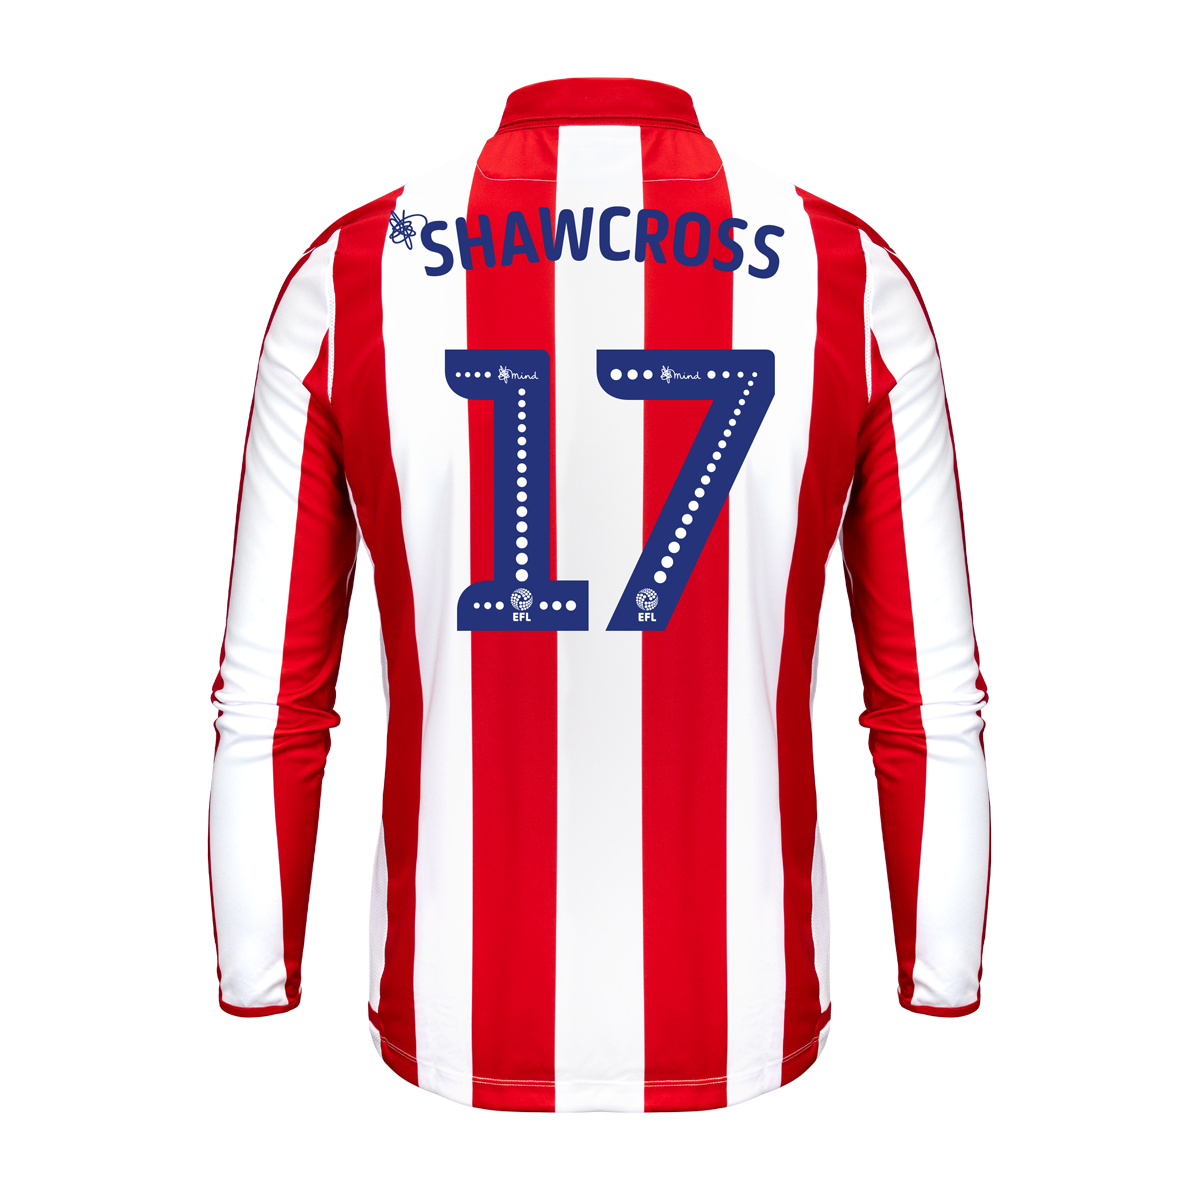 2019/20 Adult Home LS Shirt - Shawcross